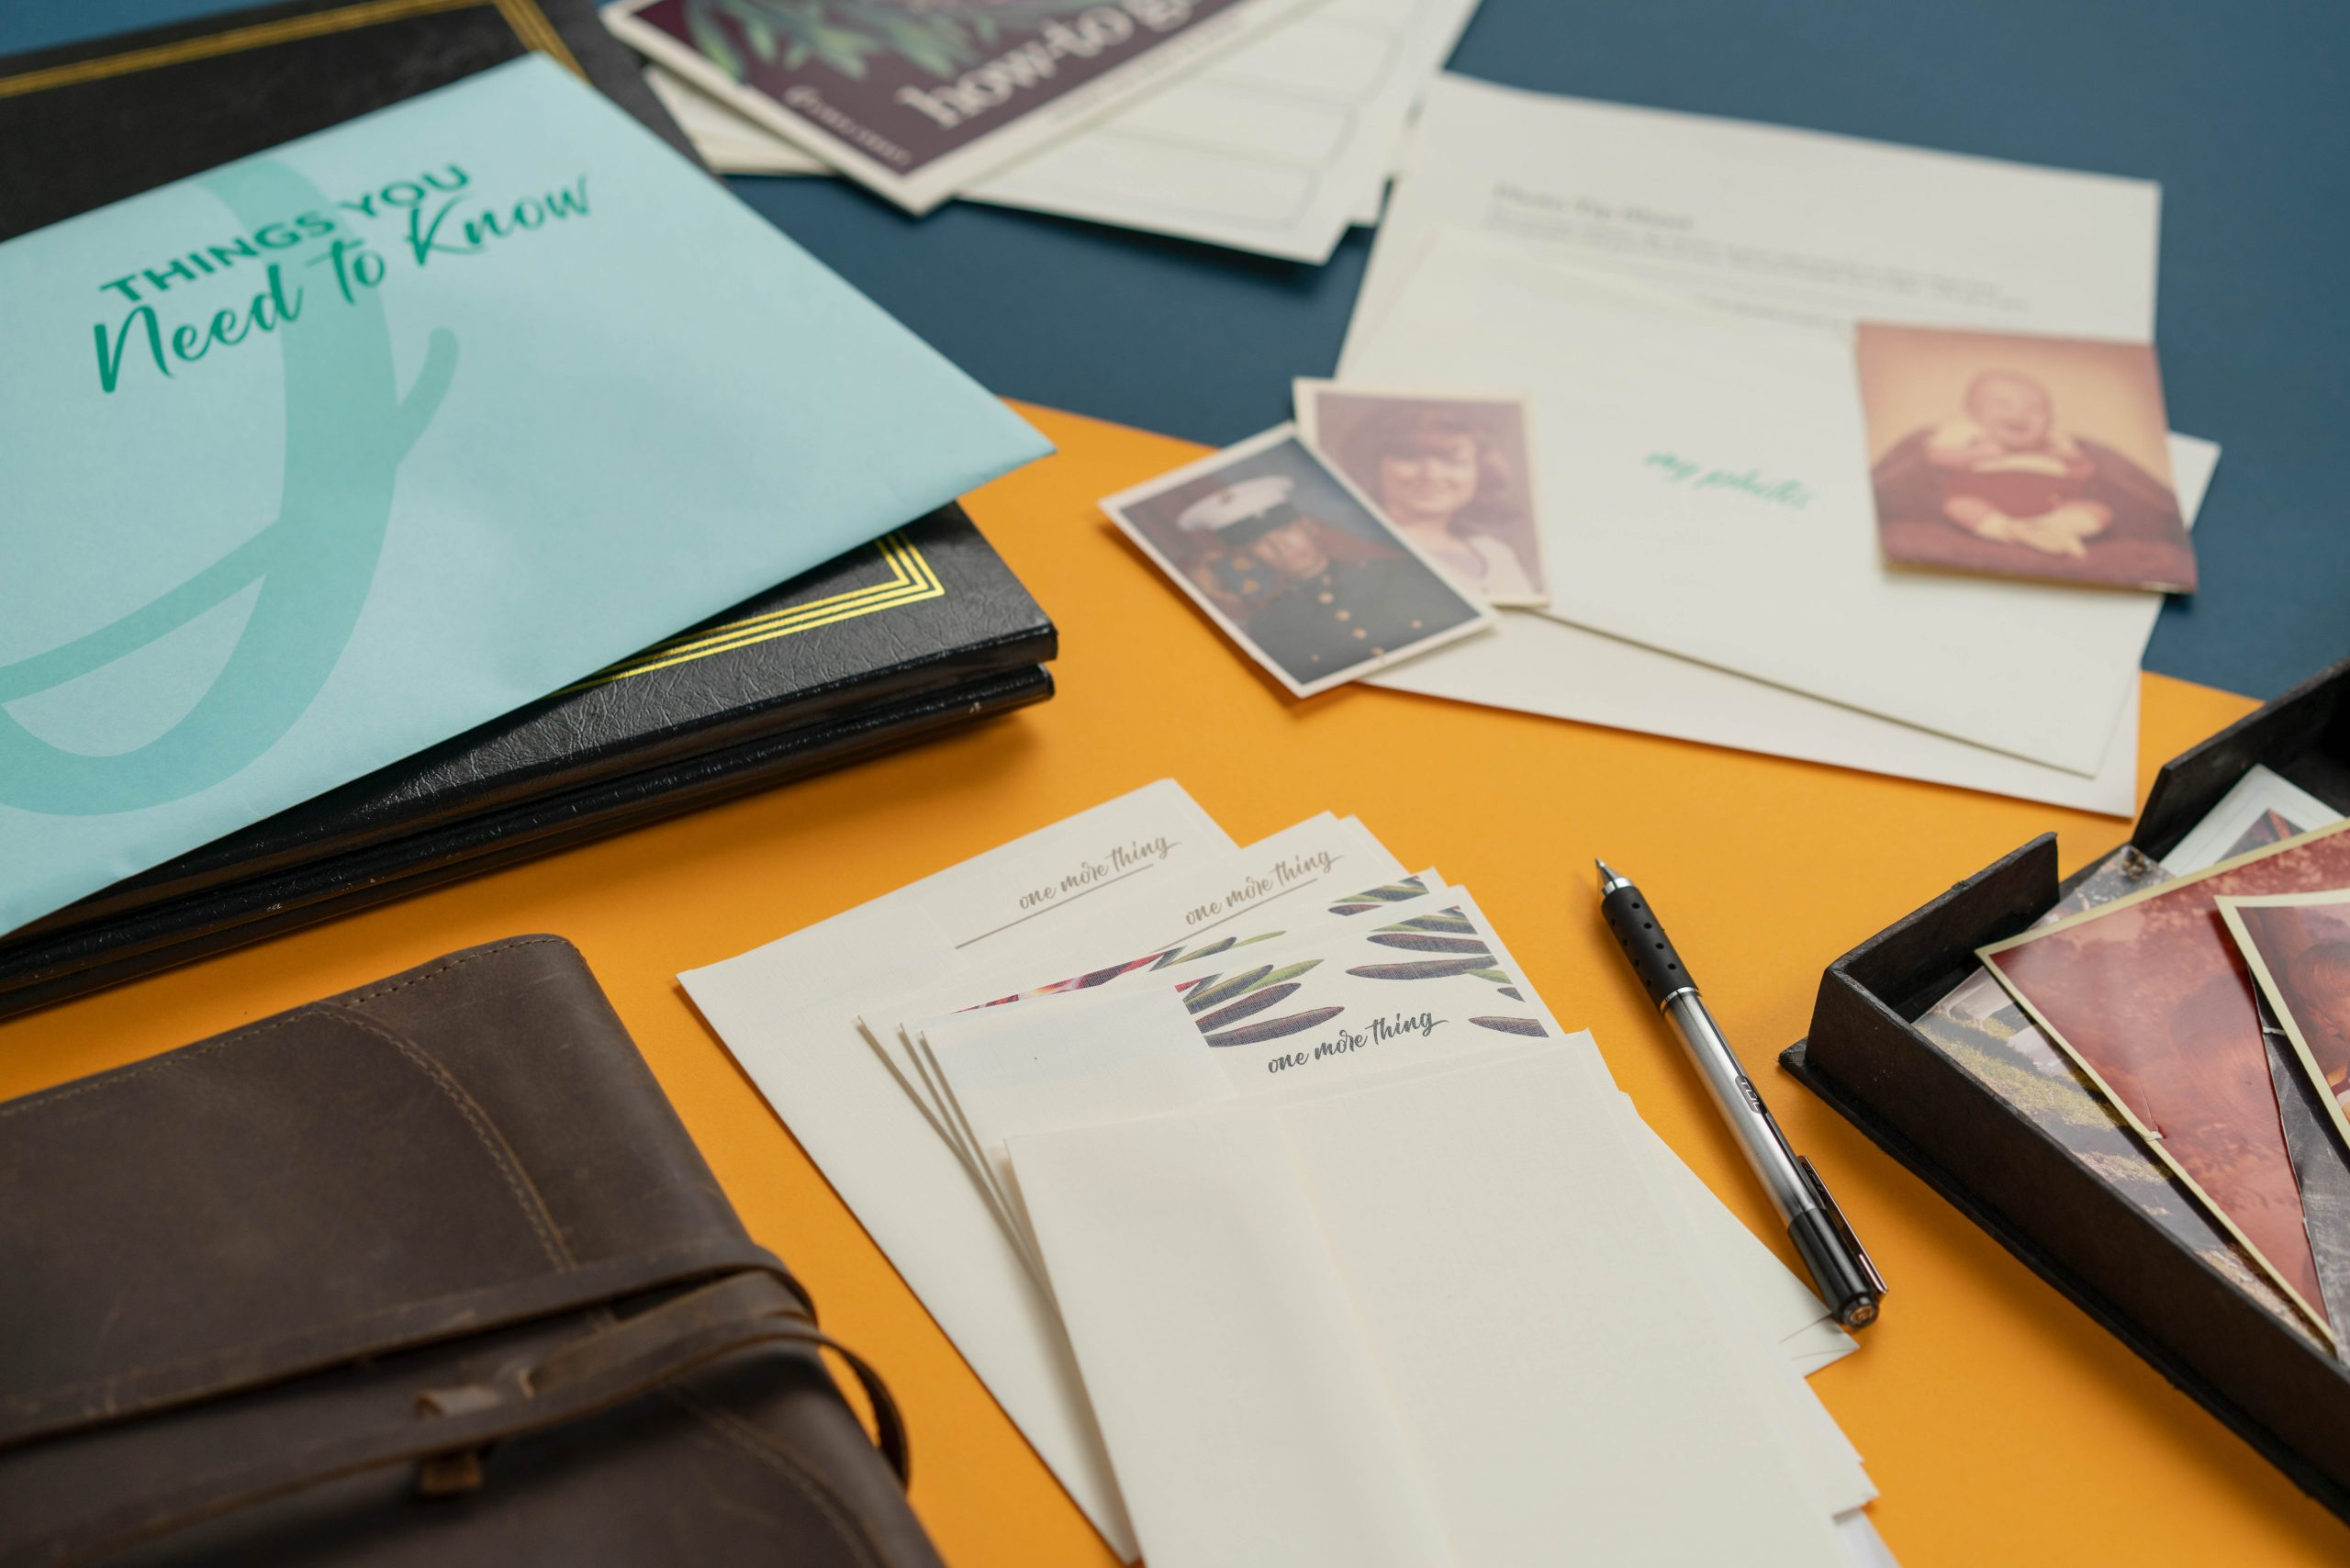 Things You Need to Know Kit by Circa Legacy with photographs, old leather journal, photo album, and pen.